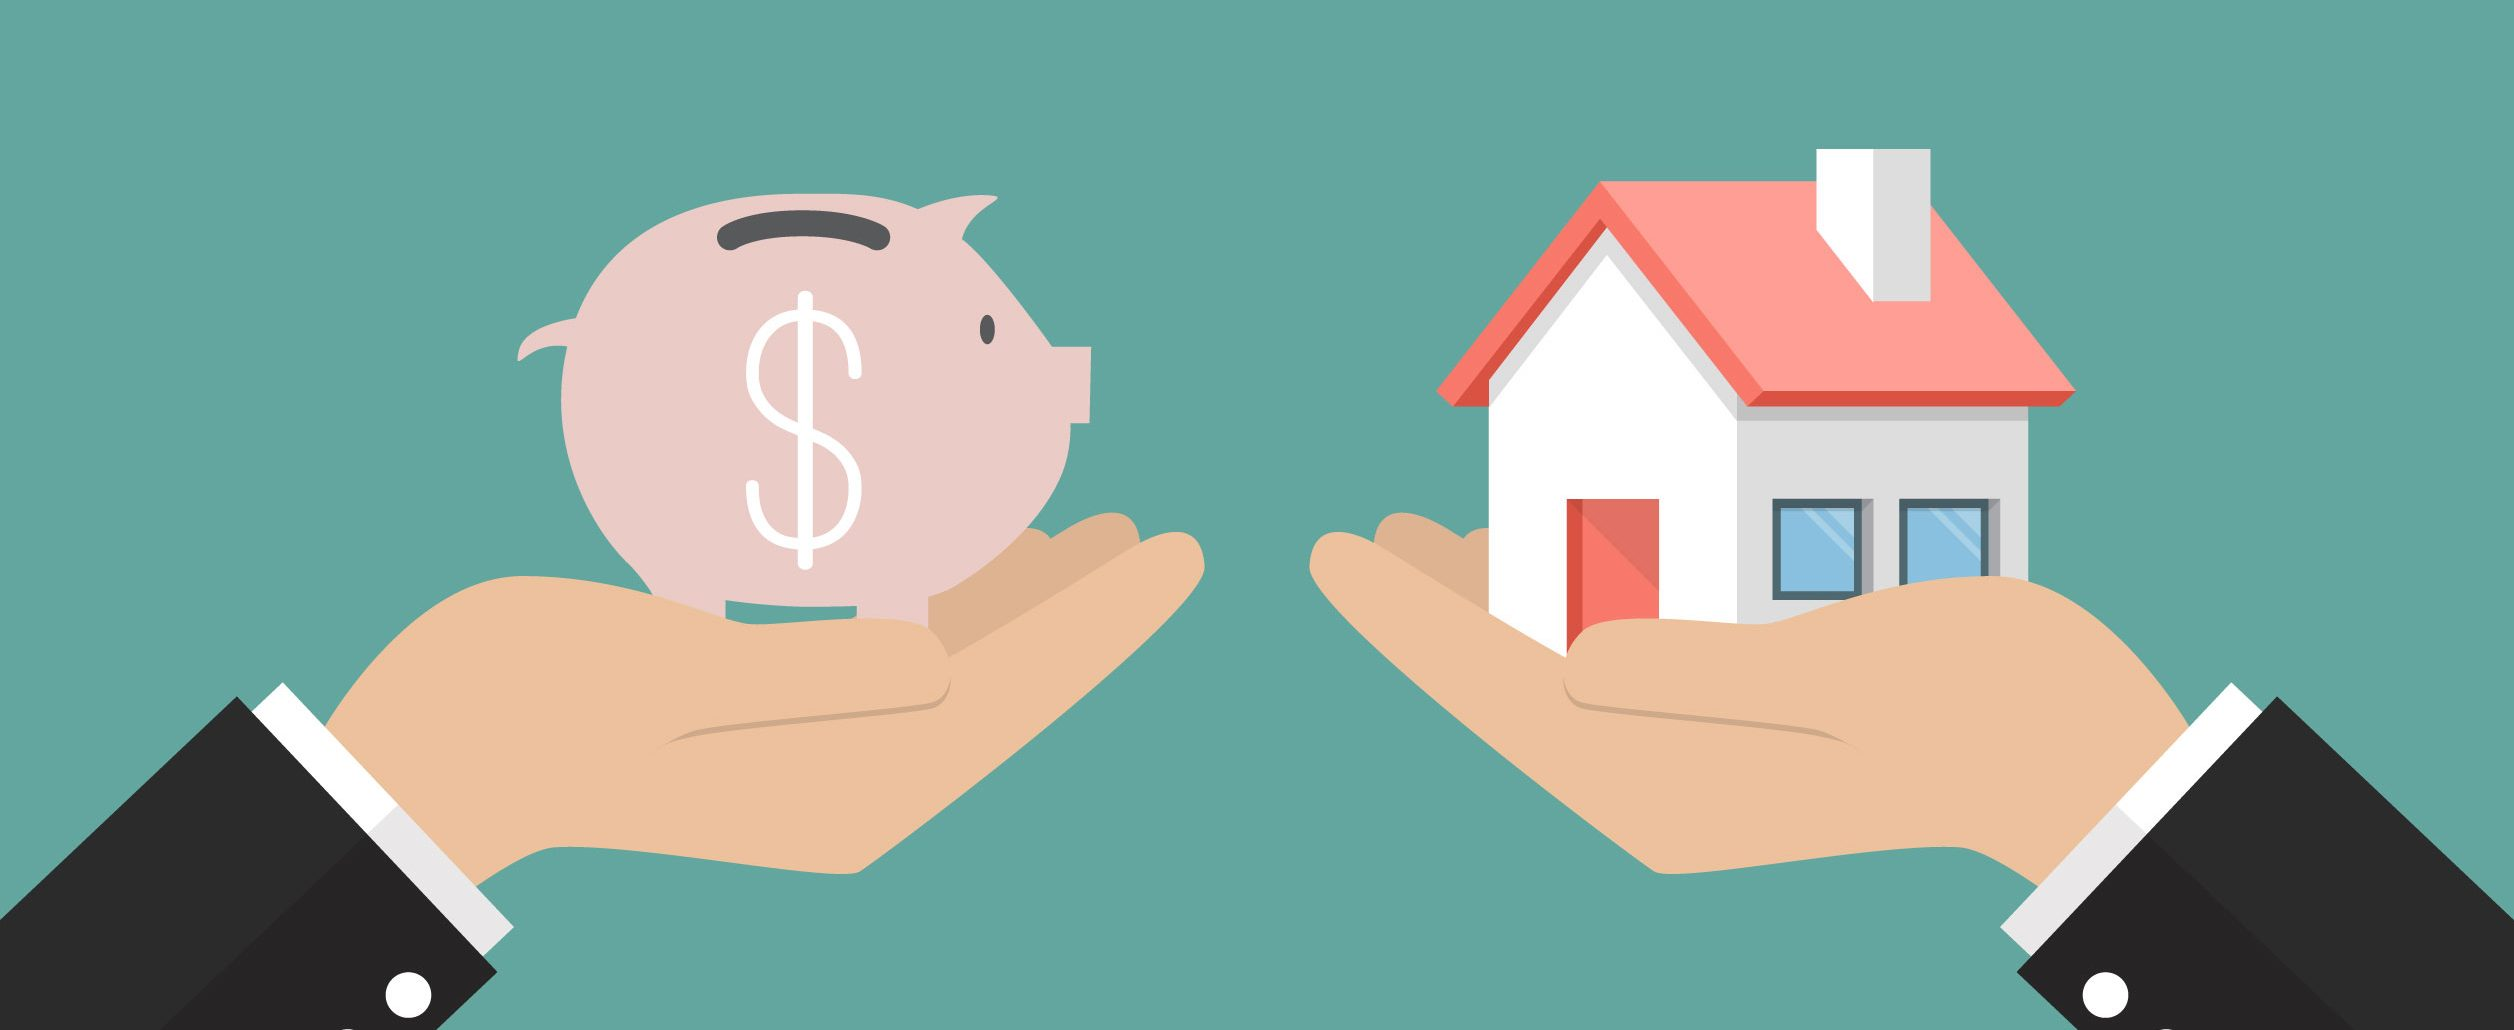 amount-of-home-you-can-afford-goes-down-as-rates-increase.jpg